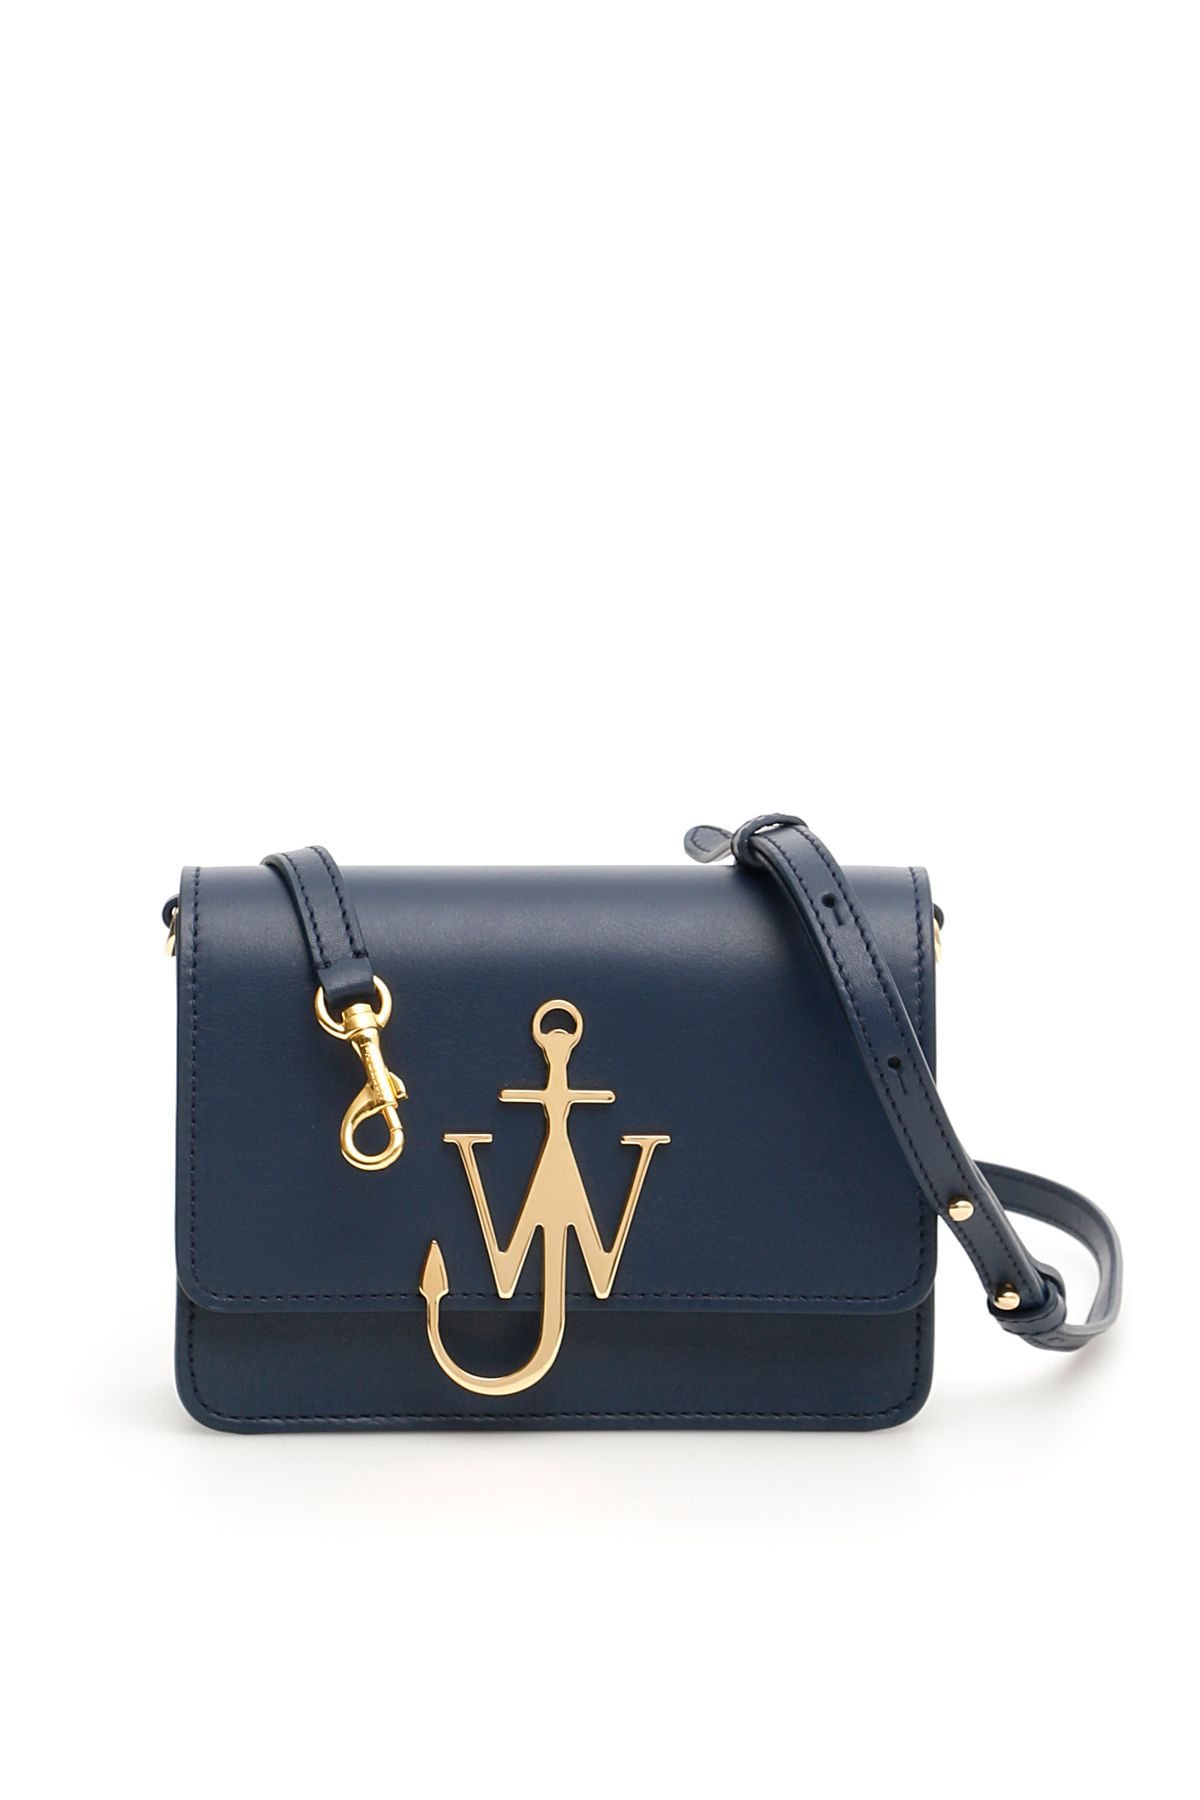 J.W. Anderson Leather Logo Purse